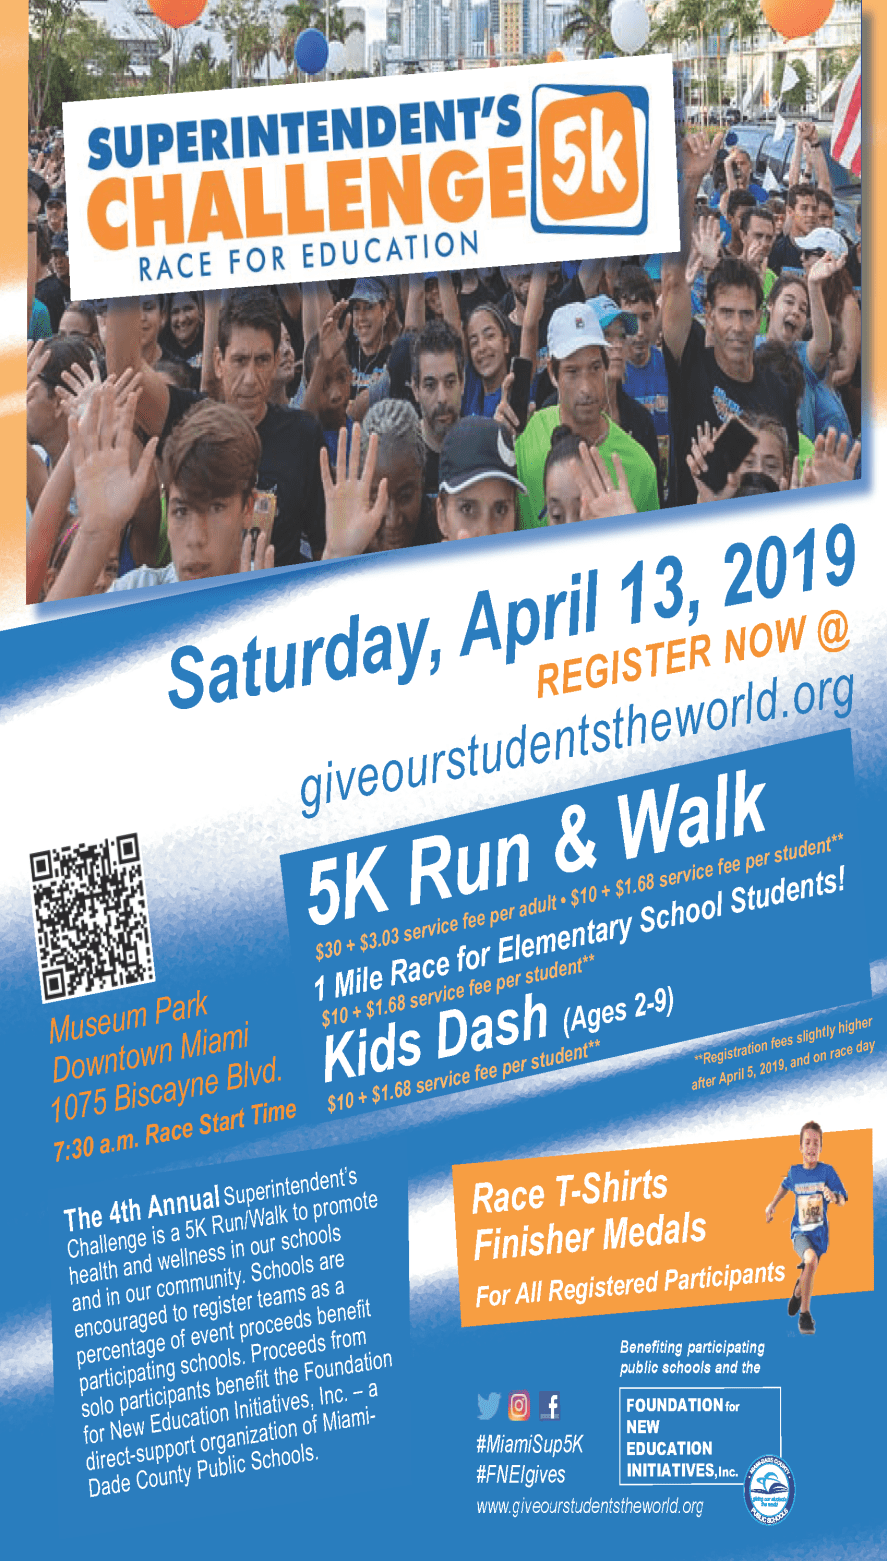 2019 Superintendent's 5K Run/Walk Race for Education @ Museum Park | Miami | Florida | United States